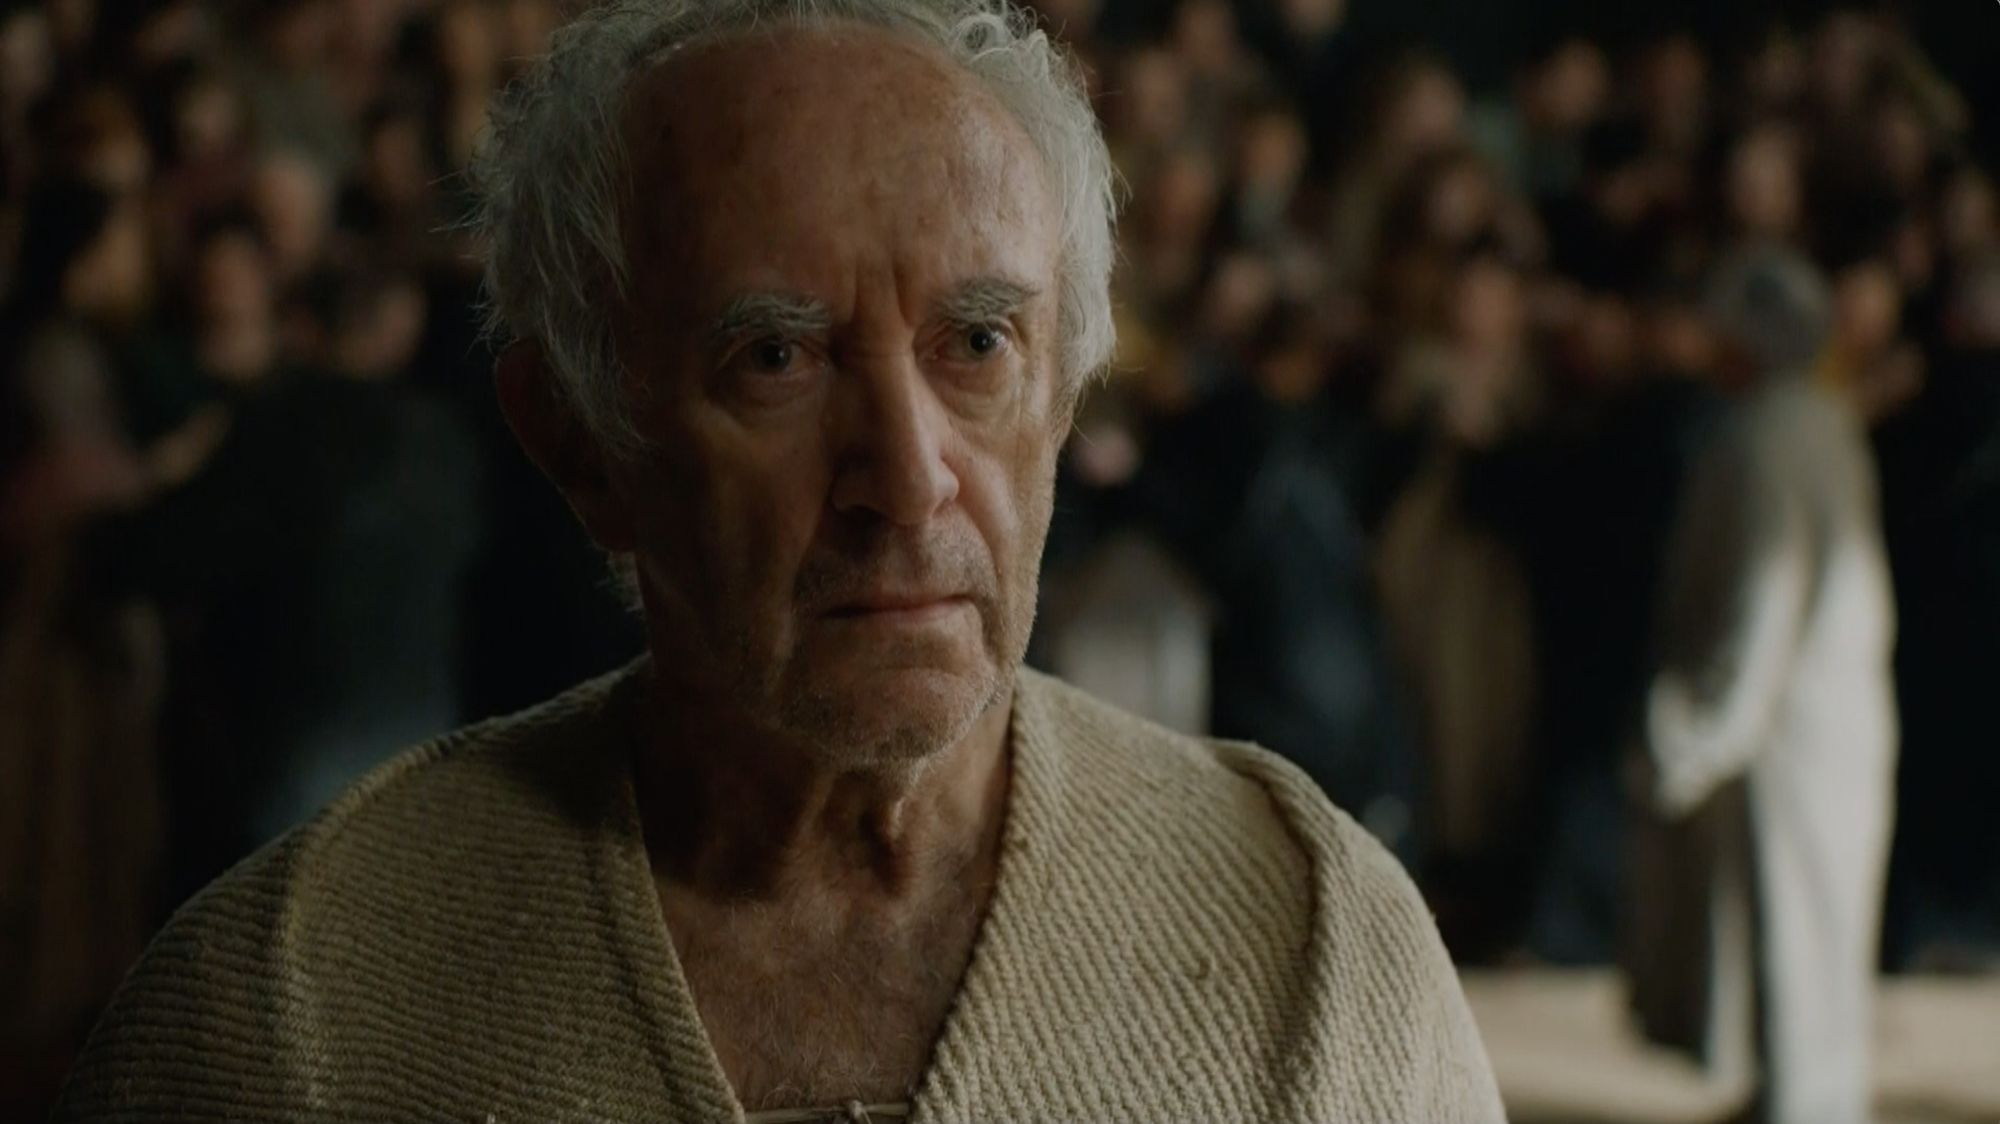 The High Sparrow considering his situation...